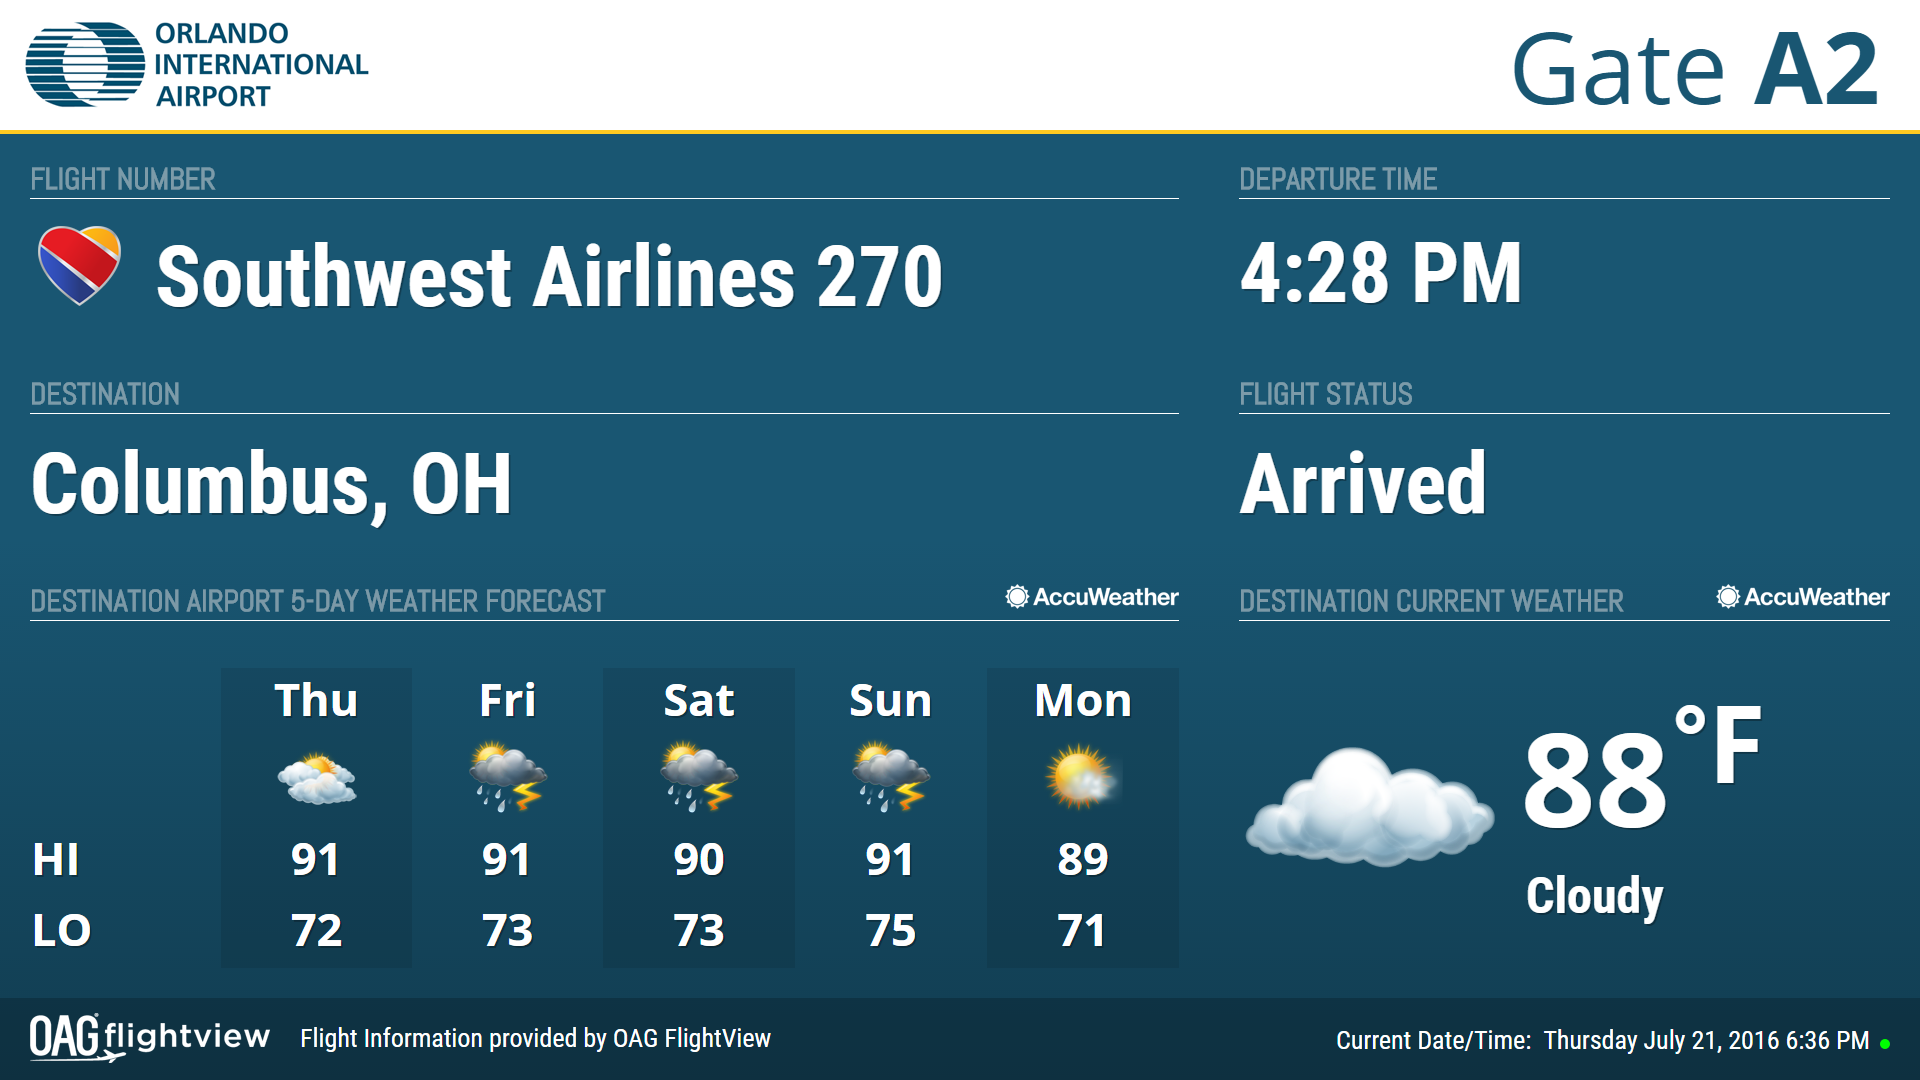 MCO_DestinationWeatherDisplay.png